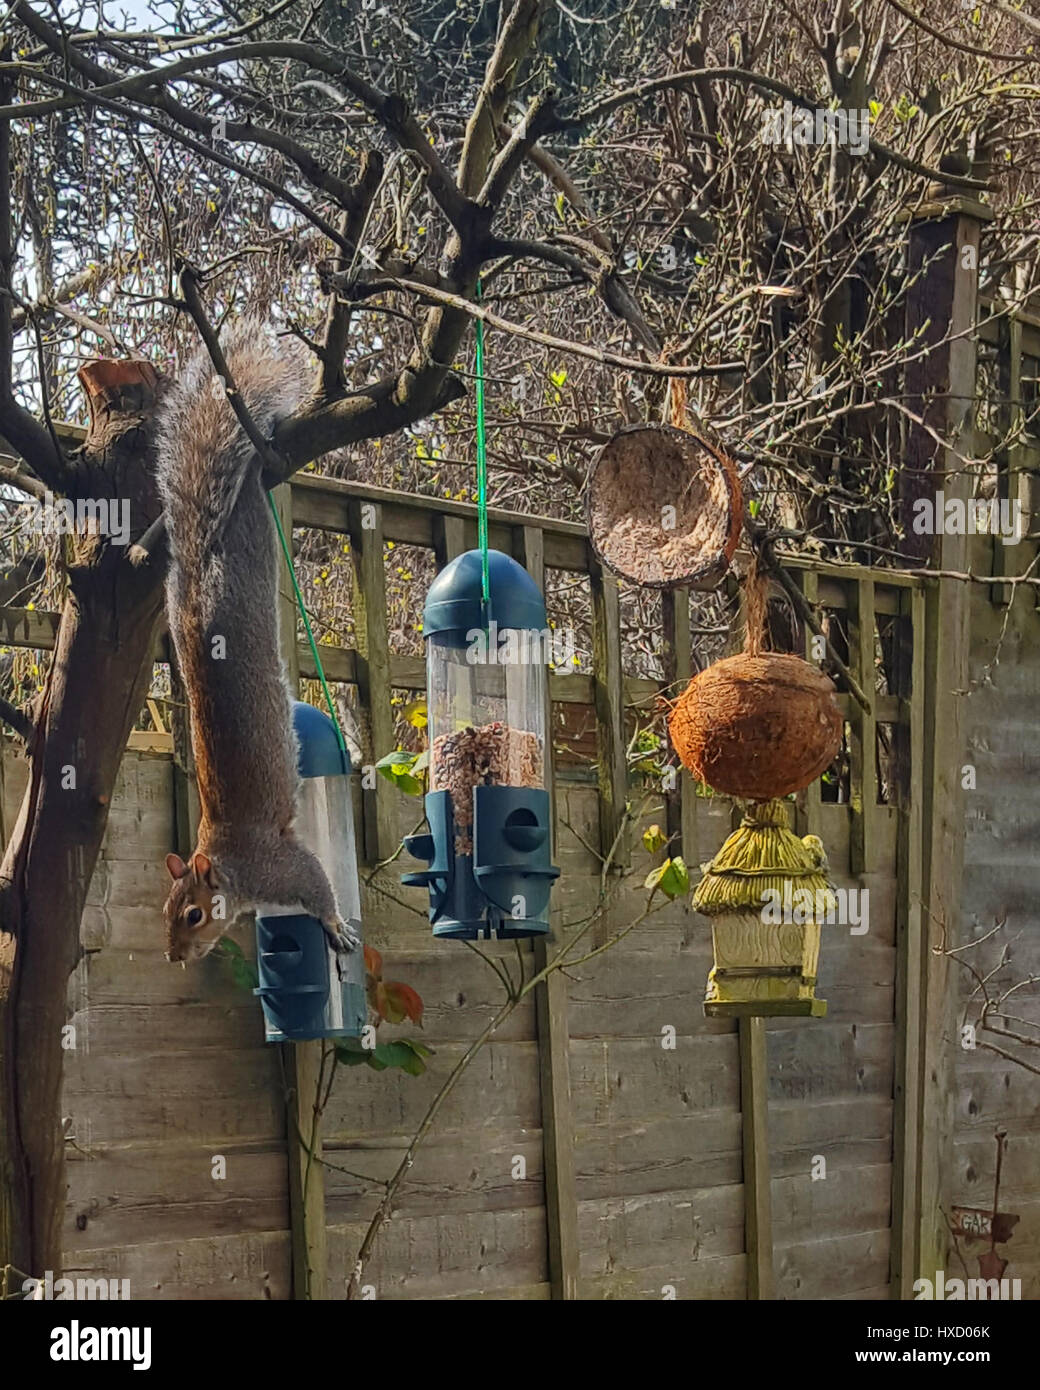 Bristol, UK. 27th Mar, 2017. UK Weather. A cheeky squirrel seen taking food from a bird feeder while hanging upside Stock Photo